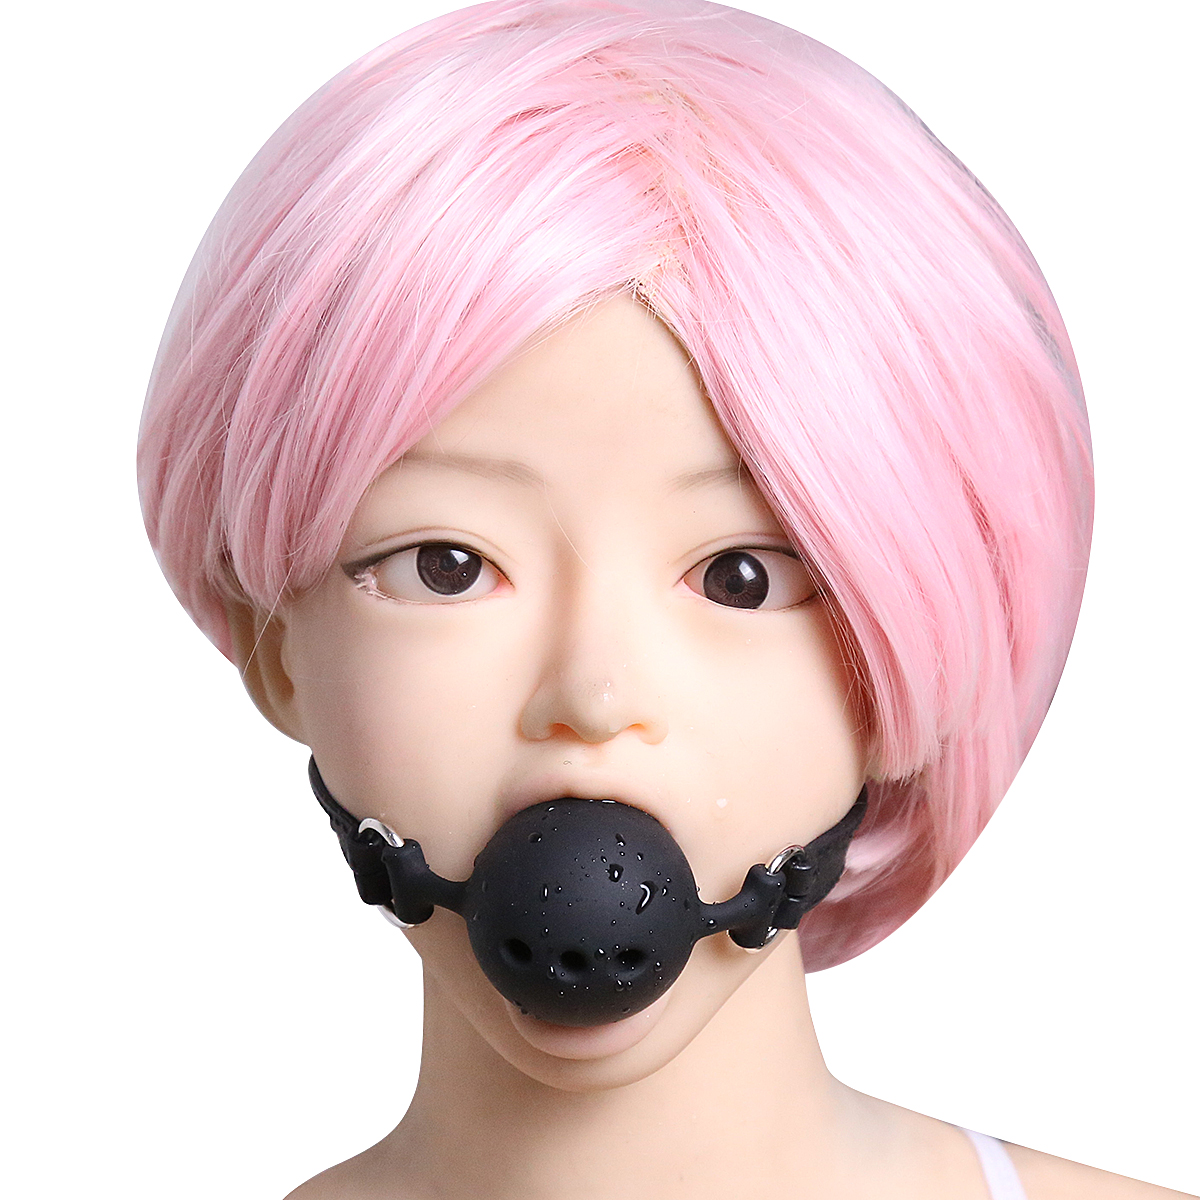 3 Sizes Open Mouth Breathable Ball Gags Restraints BDSM Wear Sex Toys For Couples